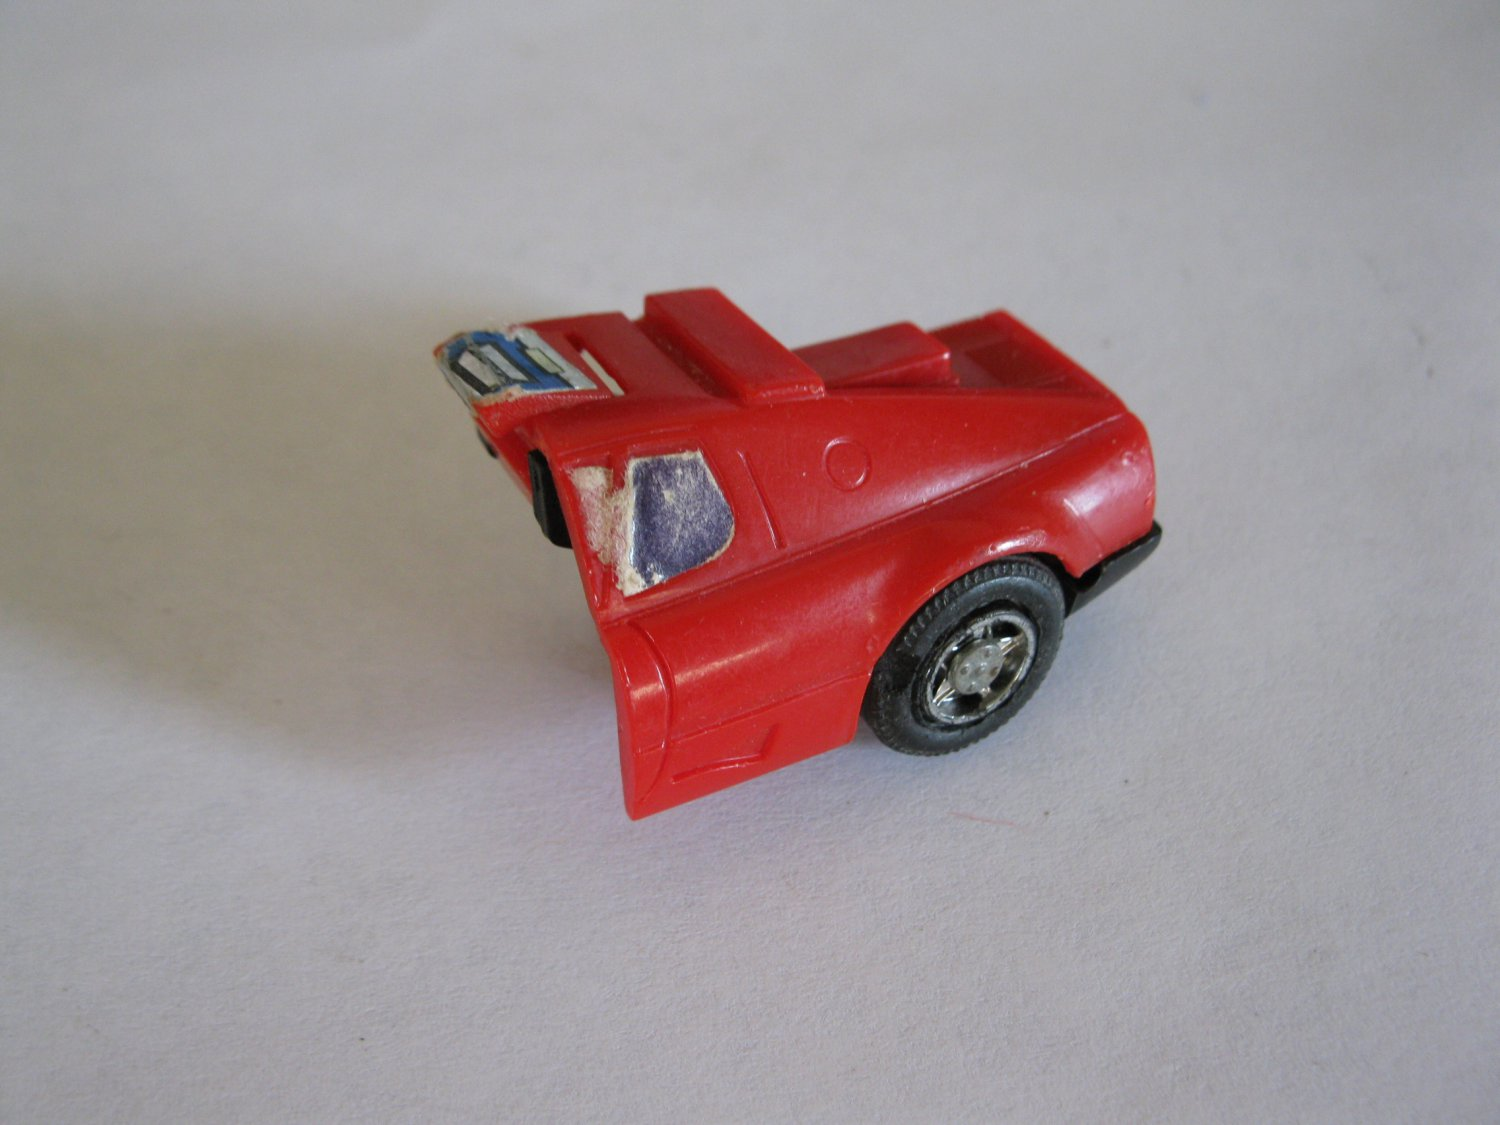 G1 Transformers Action figure part: 1984 Overdrive - Left Rear Quarter Panel W/ Wheel